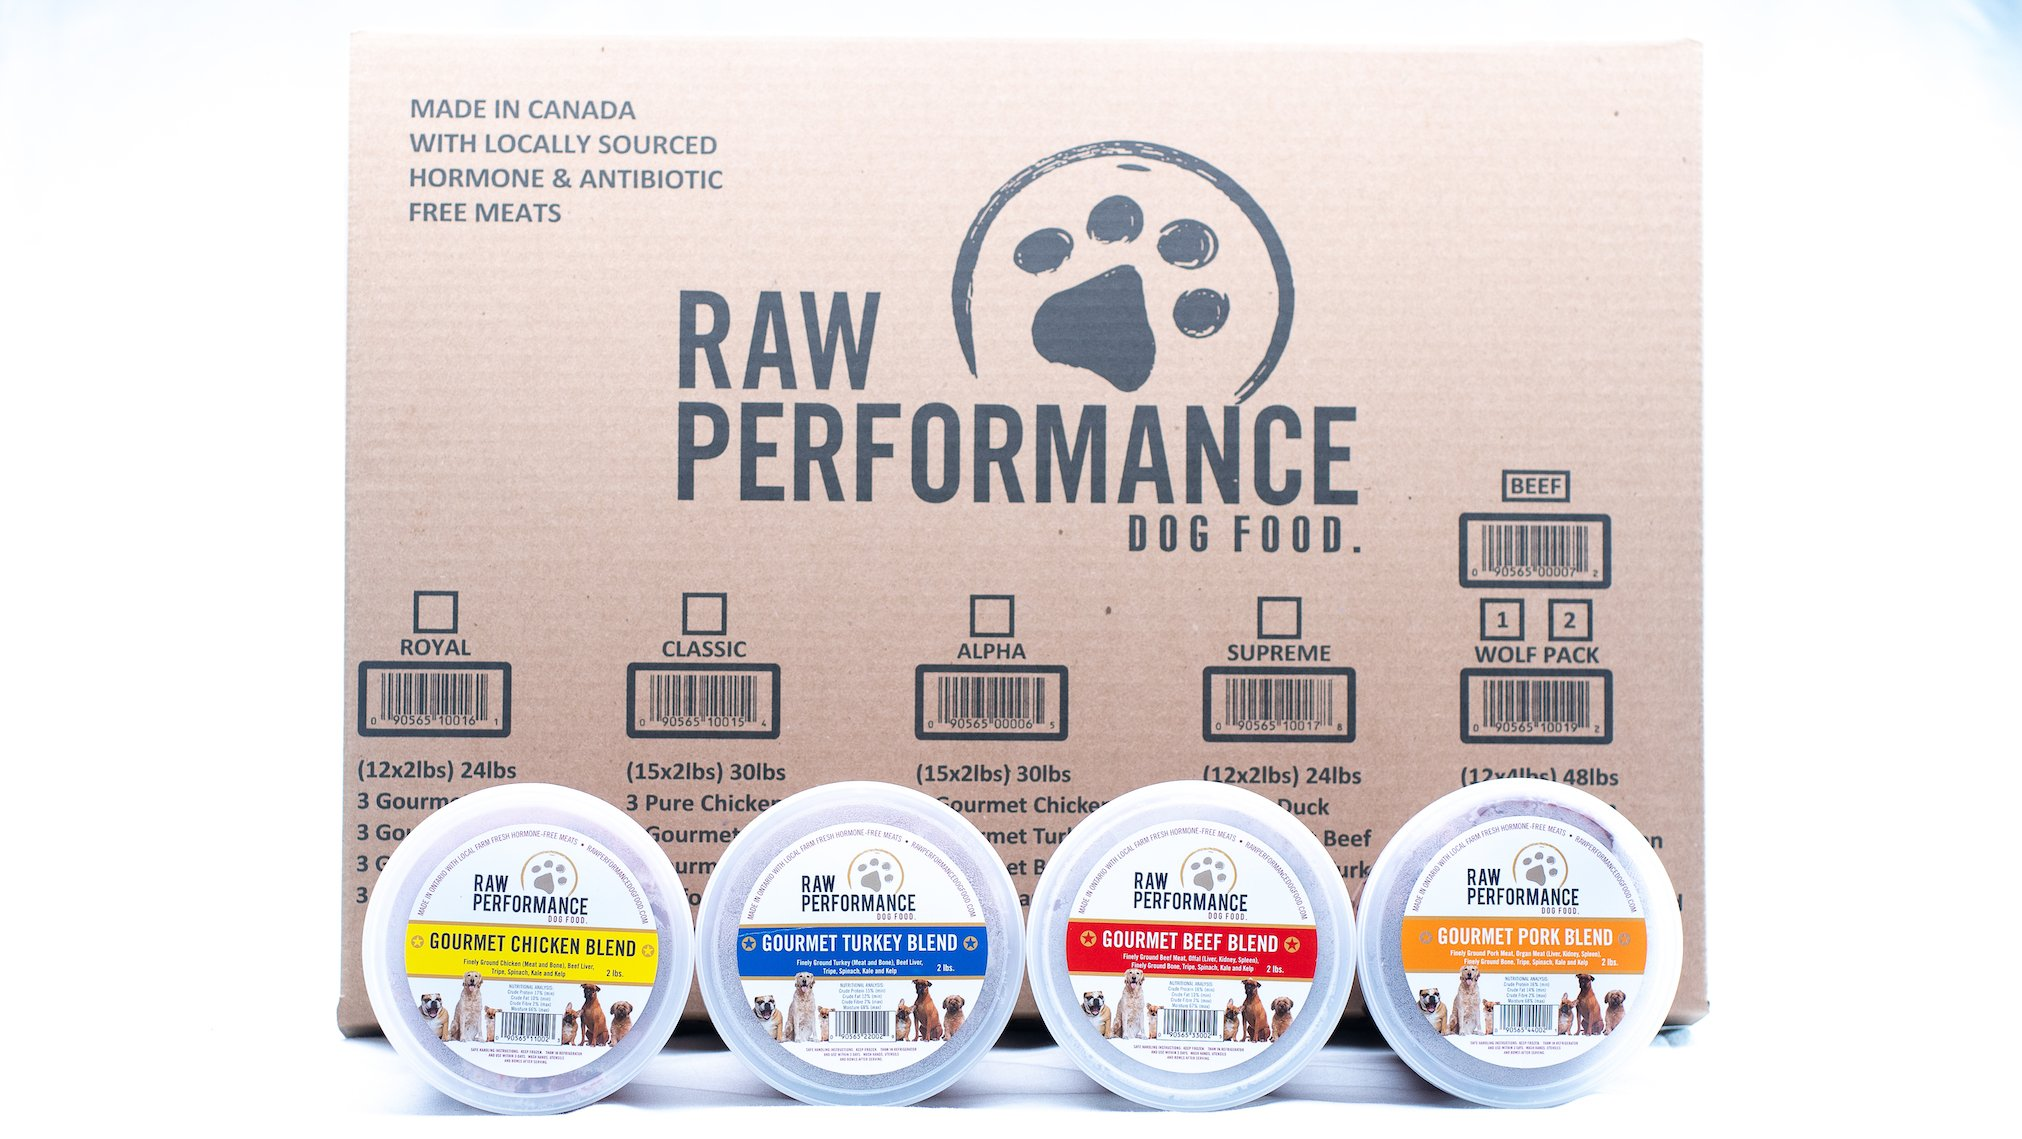 Raw Performance Variety Cases Royal, 24-lbs (12 x 2-lbs) Dog Food